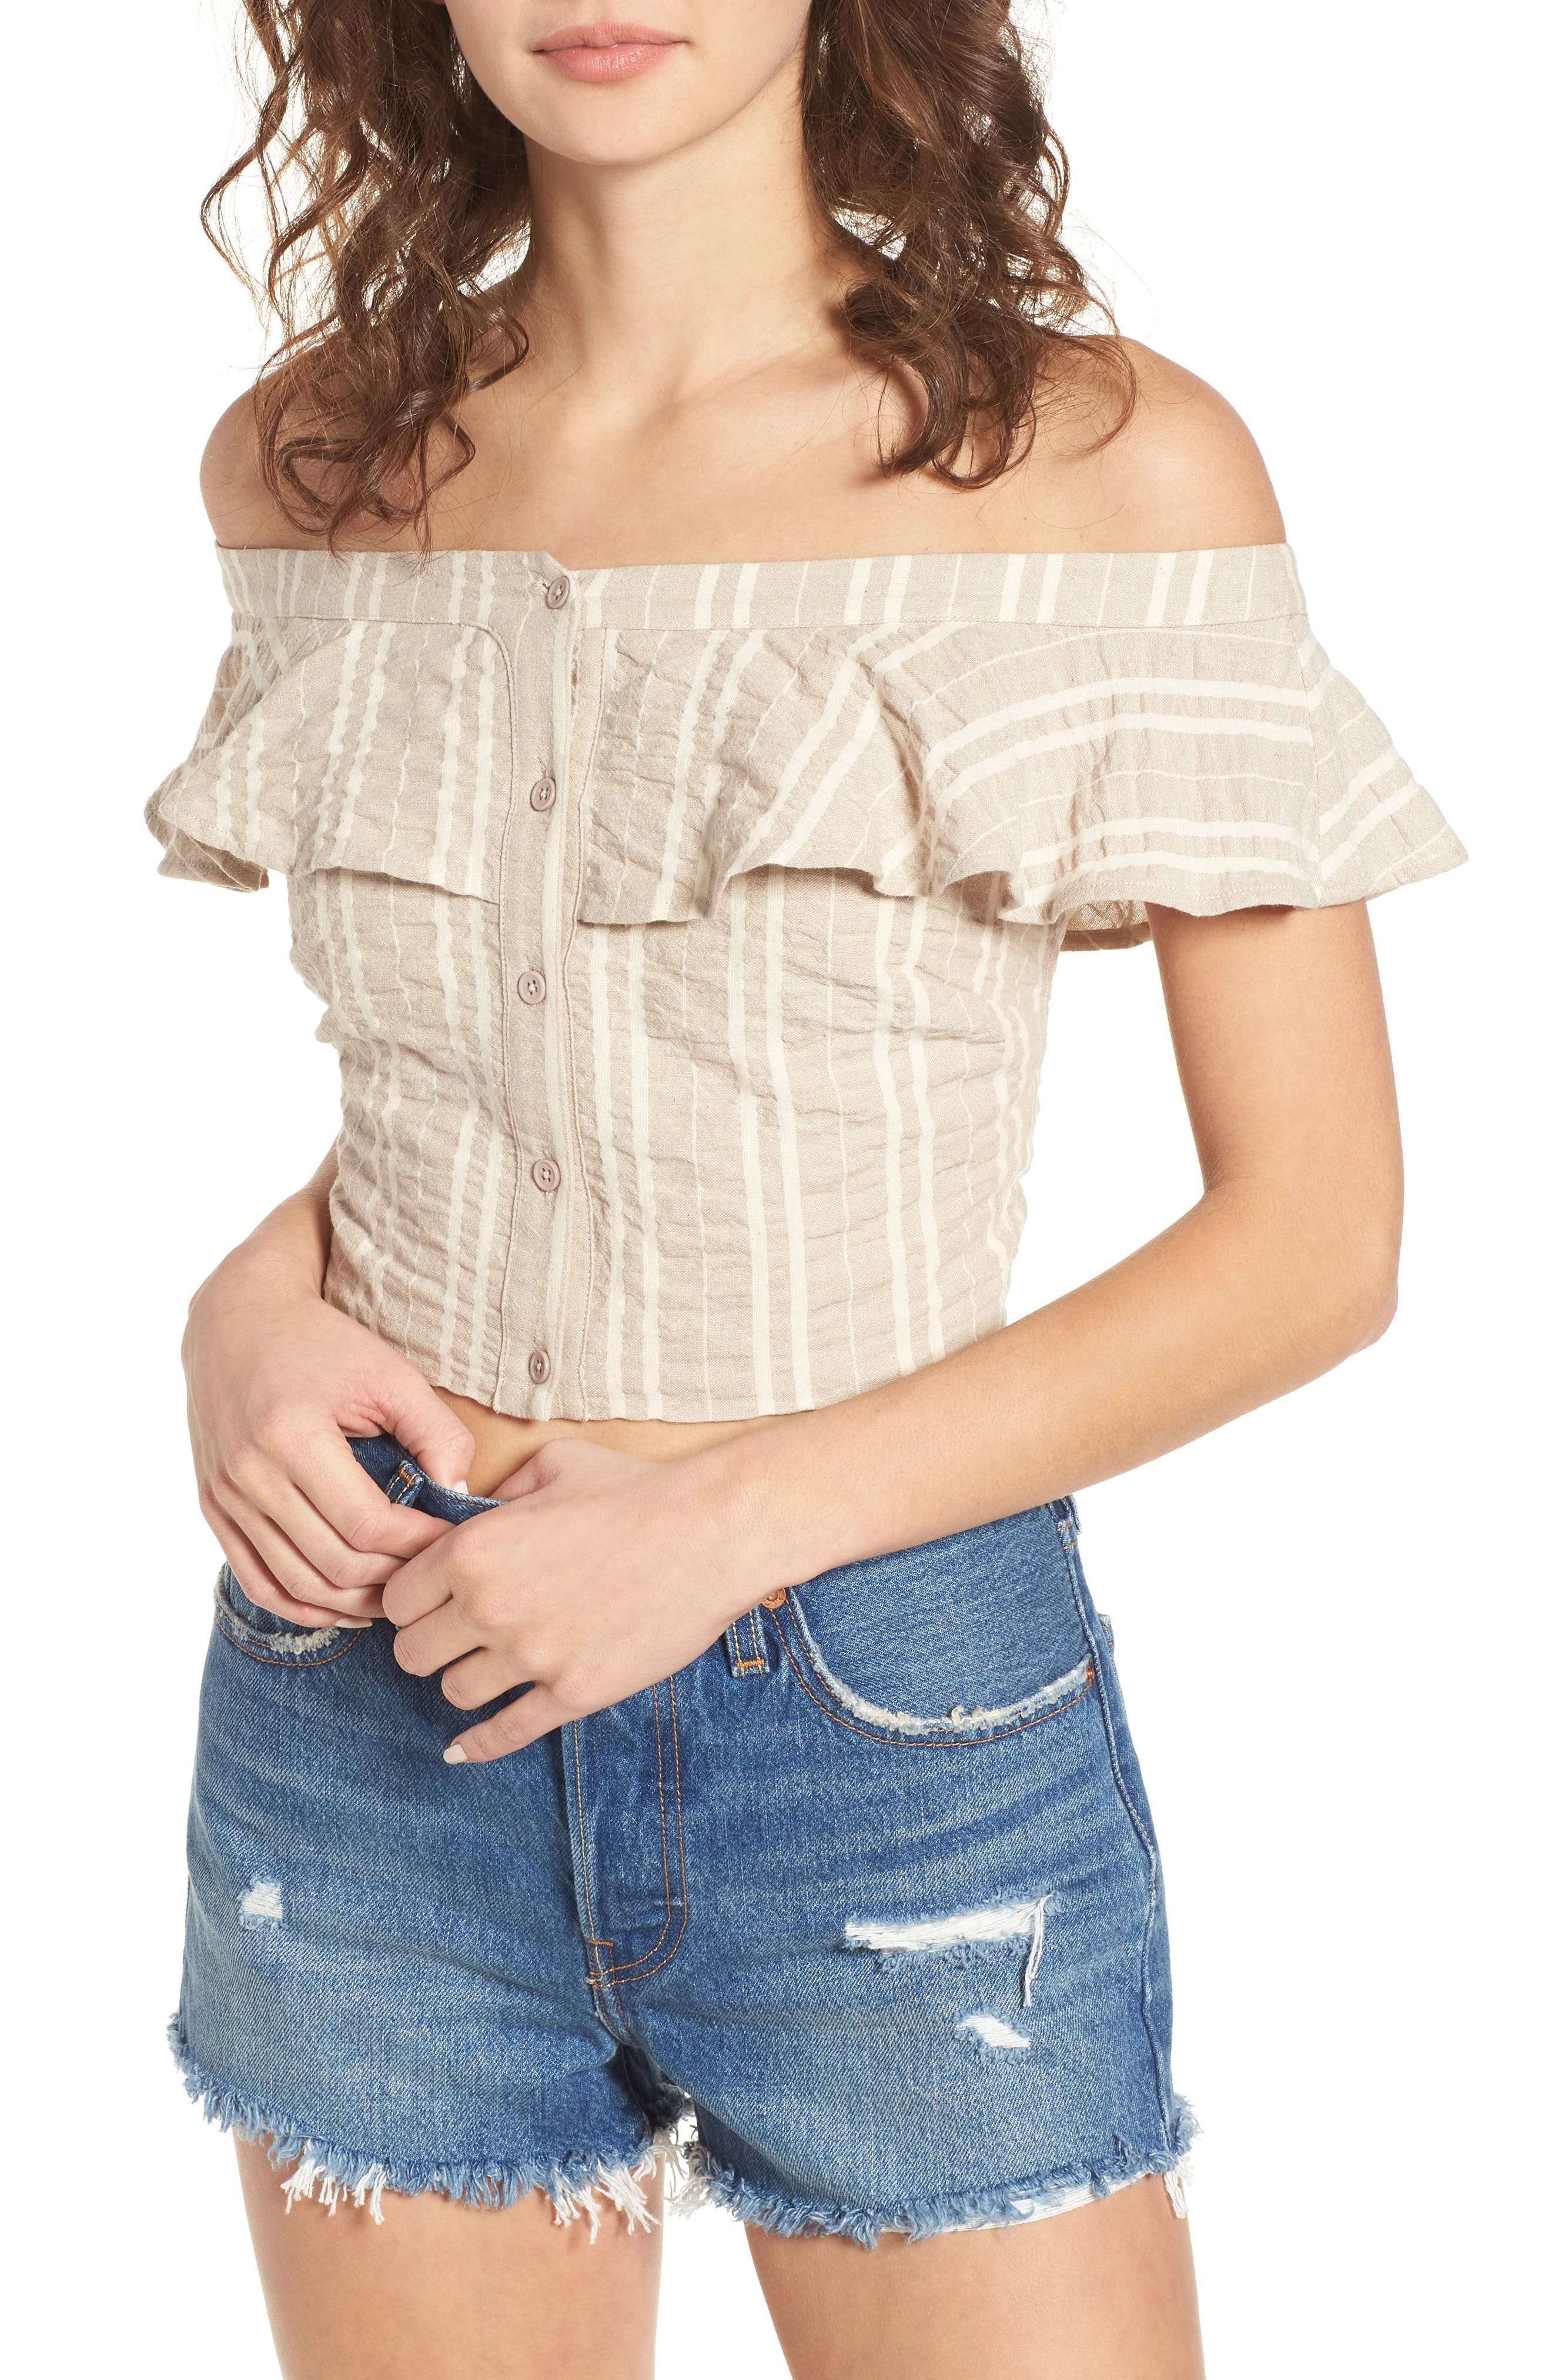 Stella Ruffle Off the Shoulder Crop Top,                             Main thumbnail 1, color,                             Creme